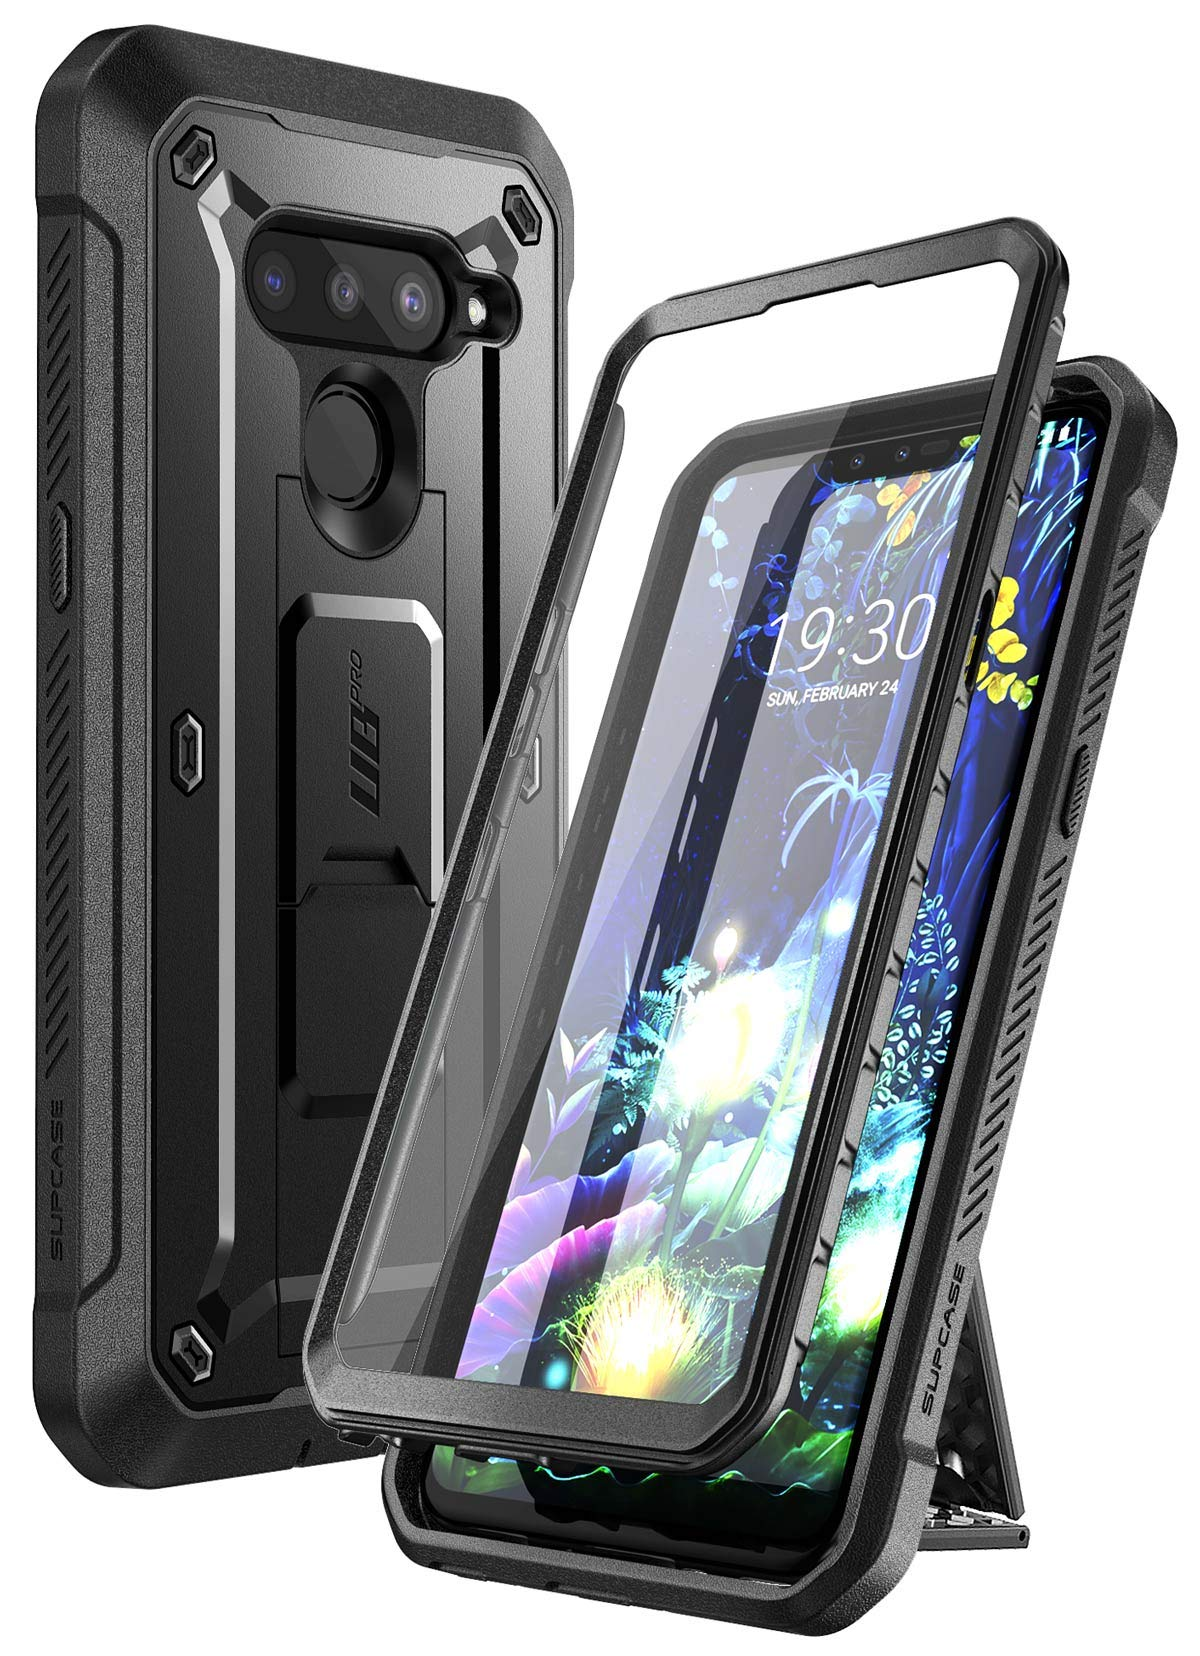 SUPCASE Unicorn Beetle PRO Series Case for LG V50 / LG V50 ThinQ 5G Case 2019, Full-Body Protective Case with Built-in Screen Protector Kickstand & Holster Clip (Black)